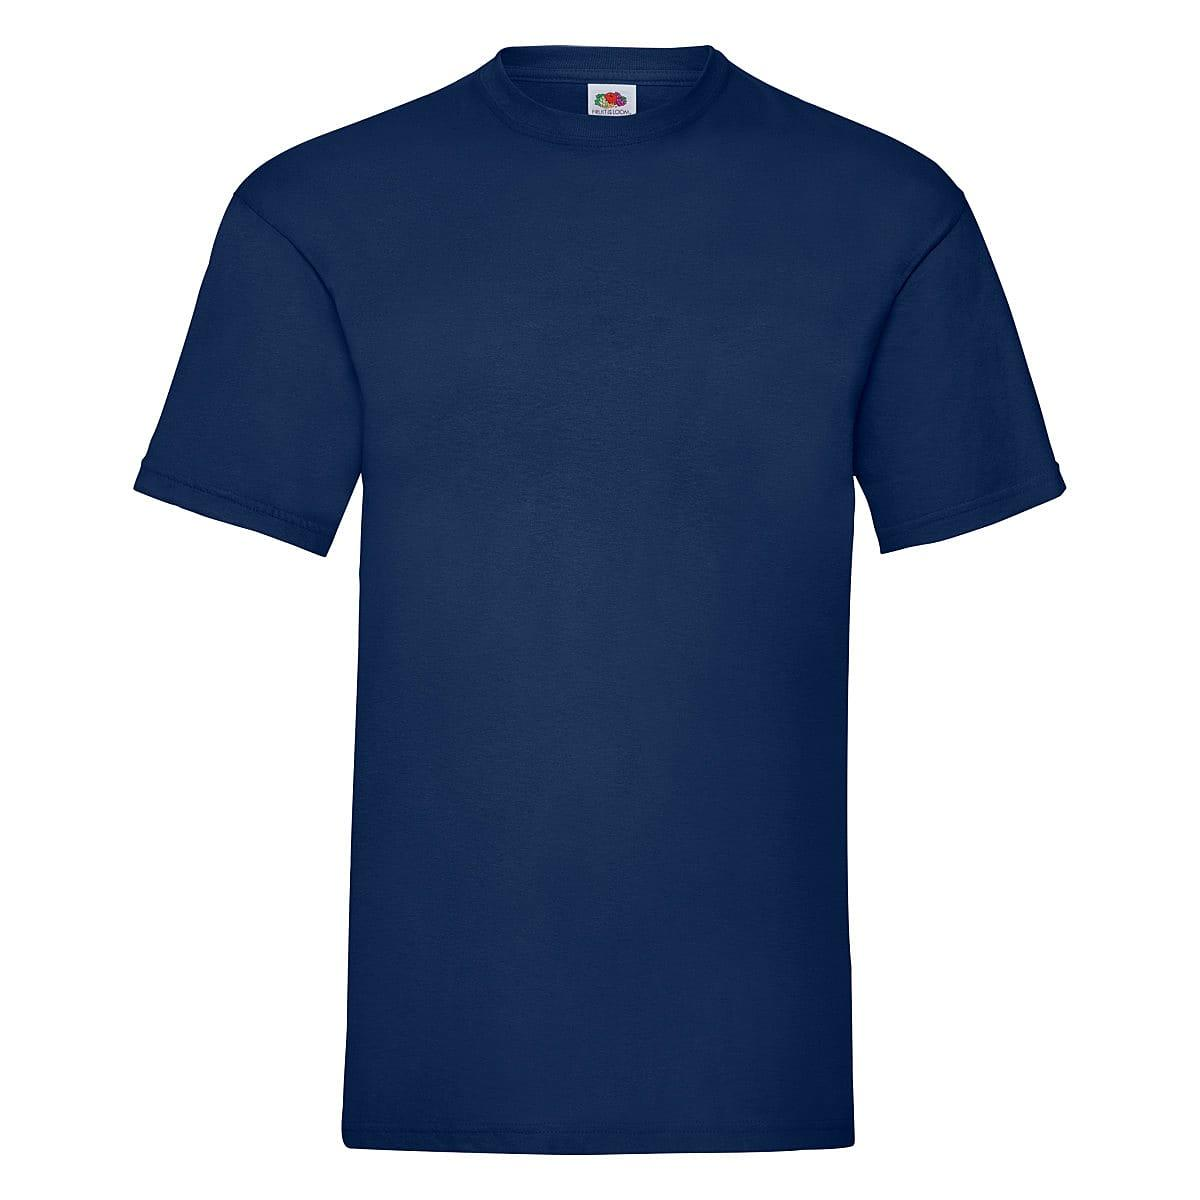 Fruit Of The Loom Valueweight T-Shirt in Navy Blue (Product Code: 61036)